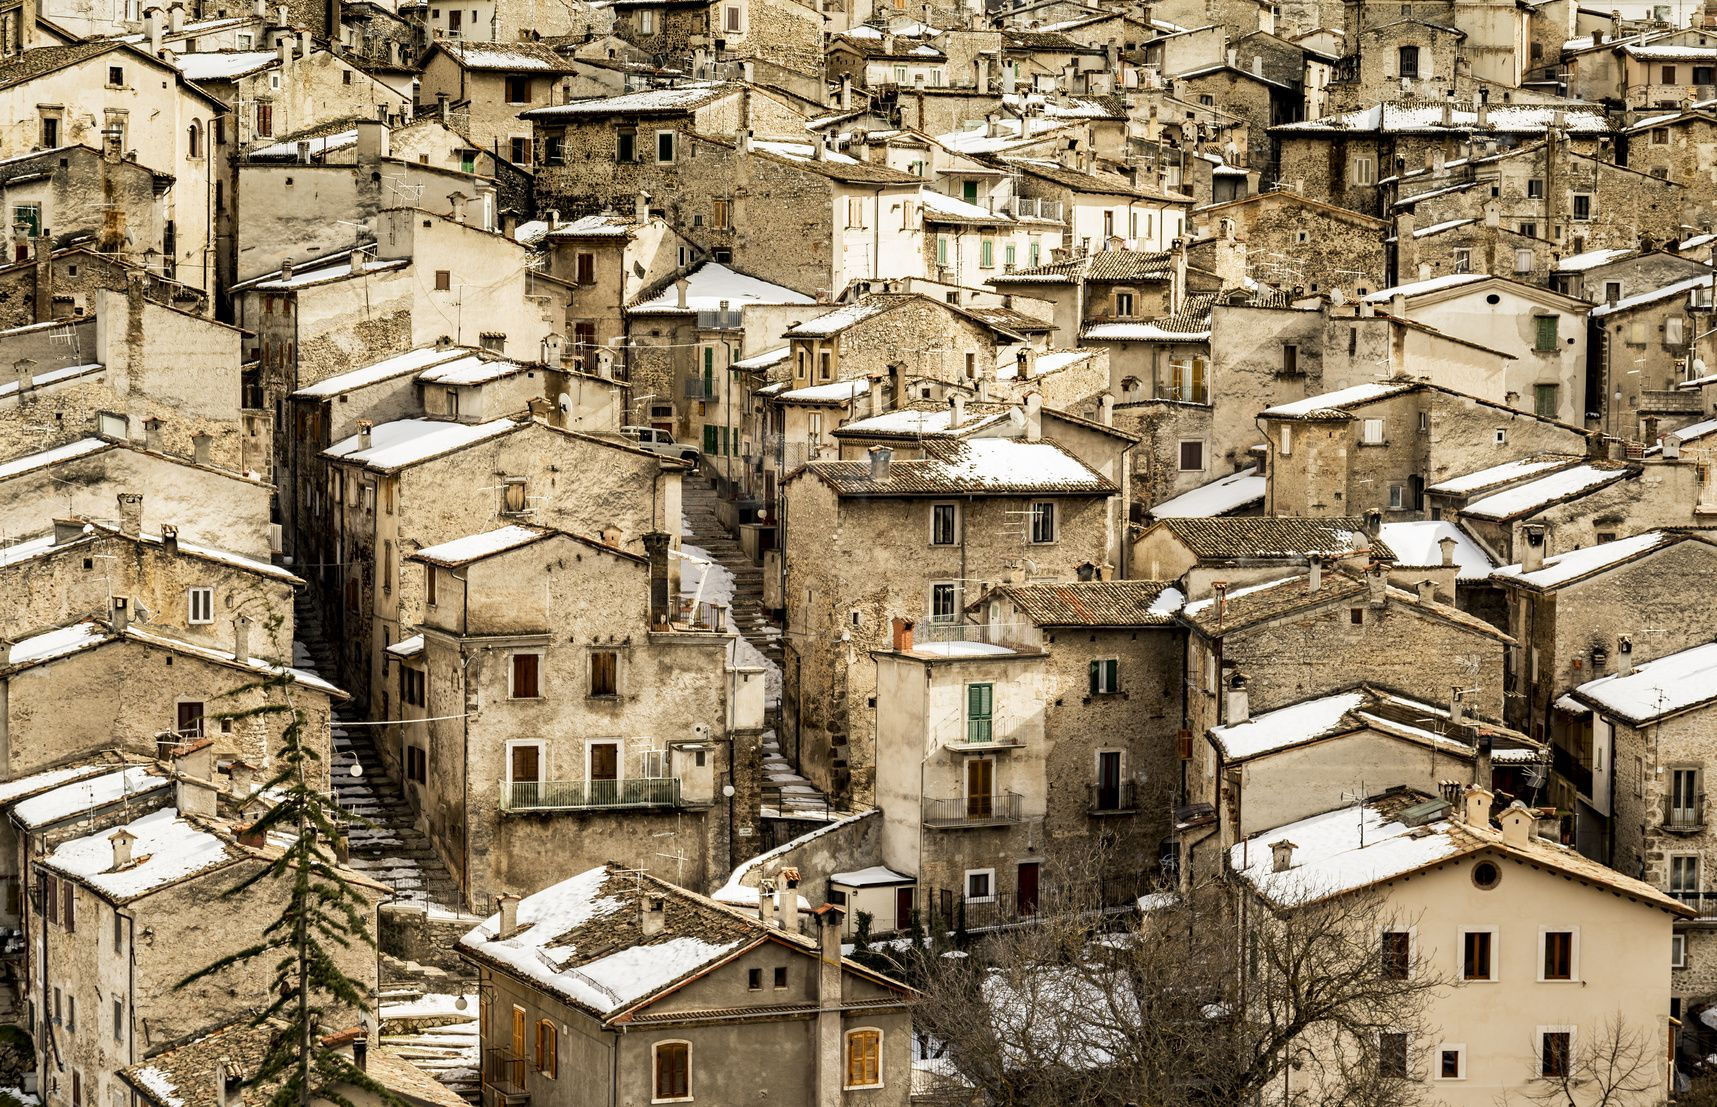 the view of the old village Scanno in Abruzzi region, Italy